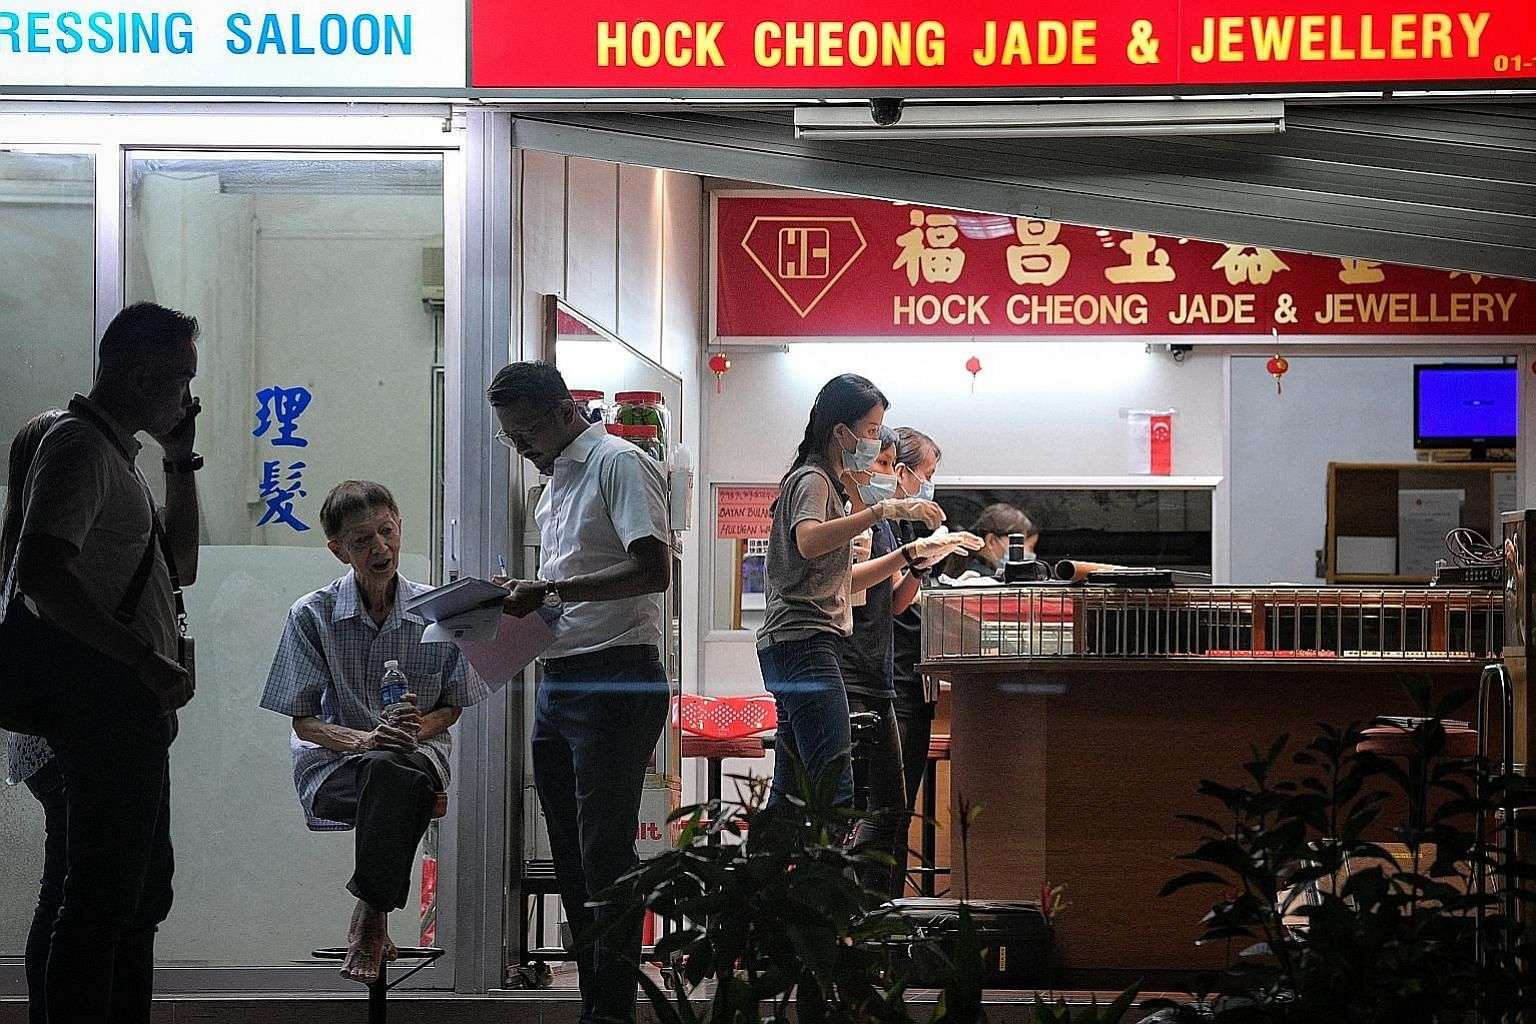 Police conducting investigations at Hock Cheong Jade & Jewellery shop in Ang Mo Kio Avenue 10, where a robbery took place at around 4pm yesterday.